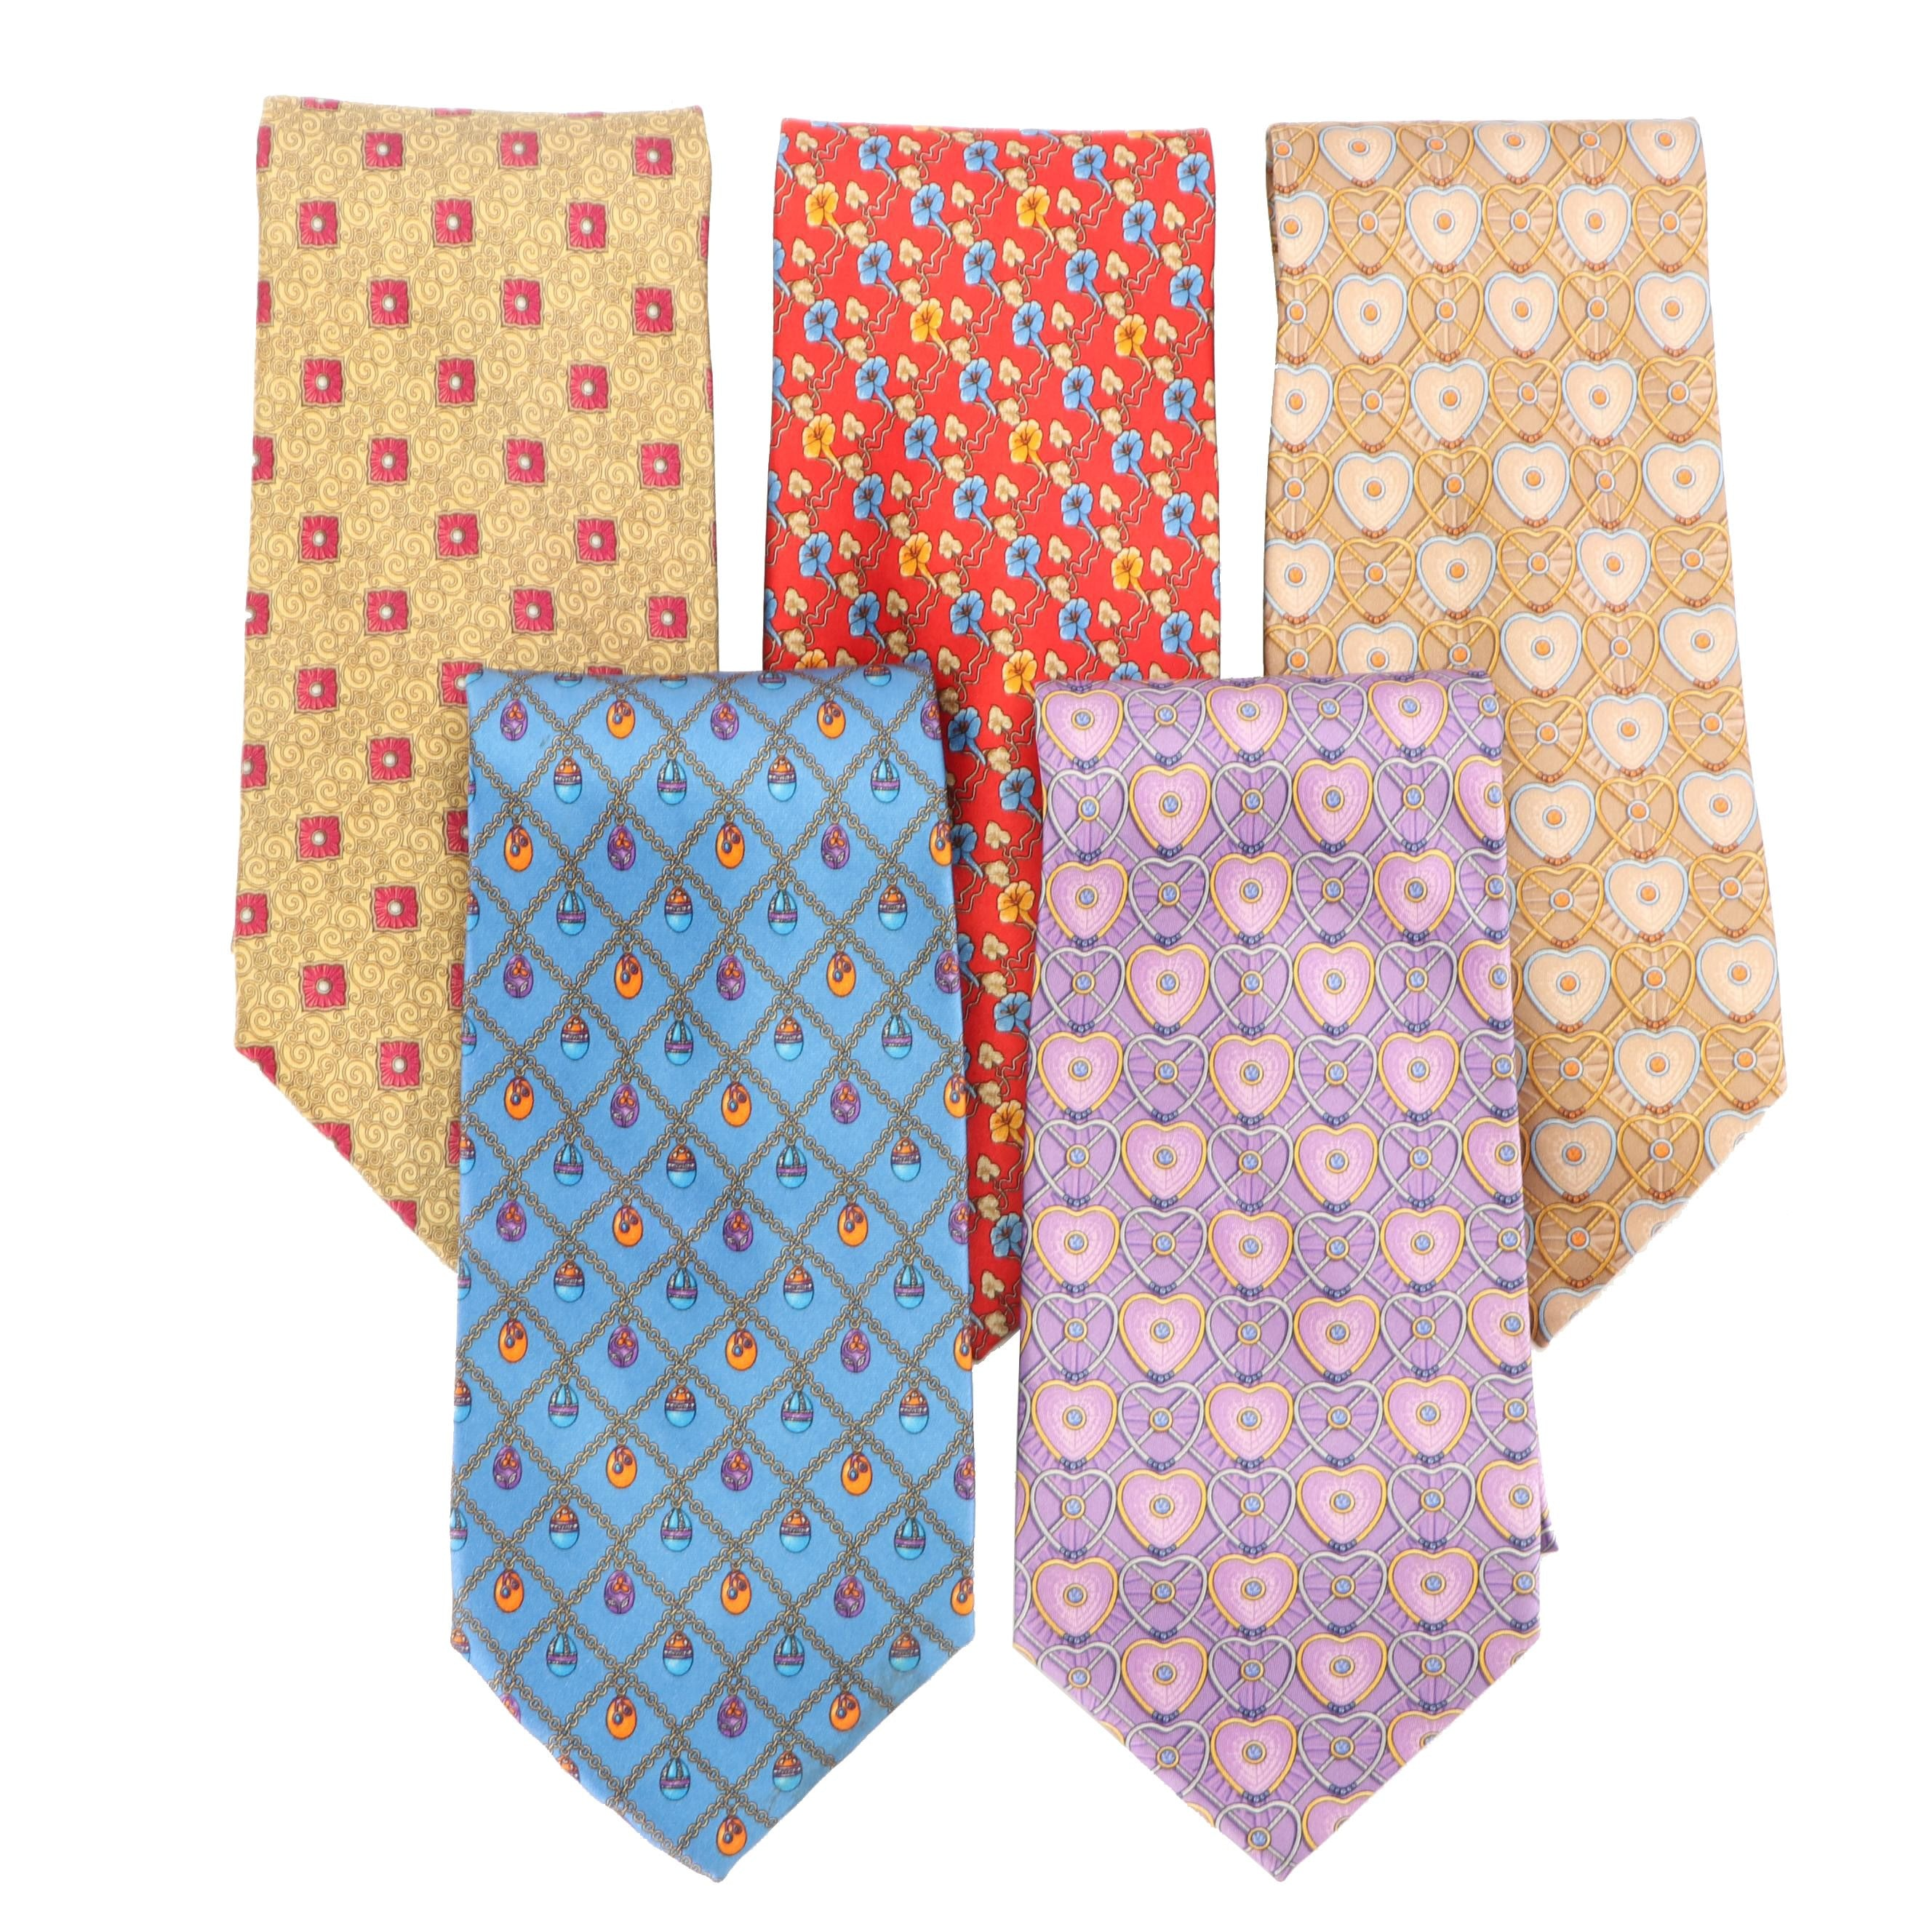 Fabergé Silk Neckties, Made in Italy